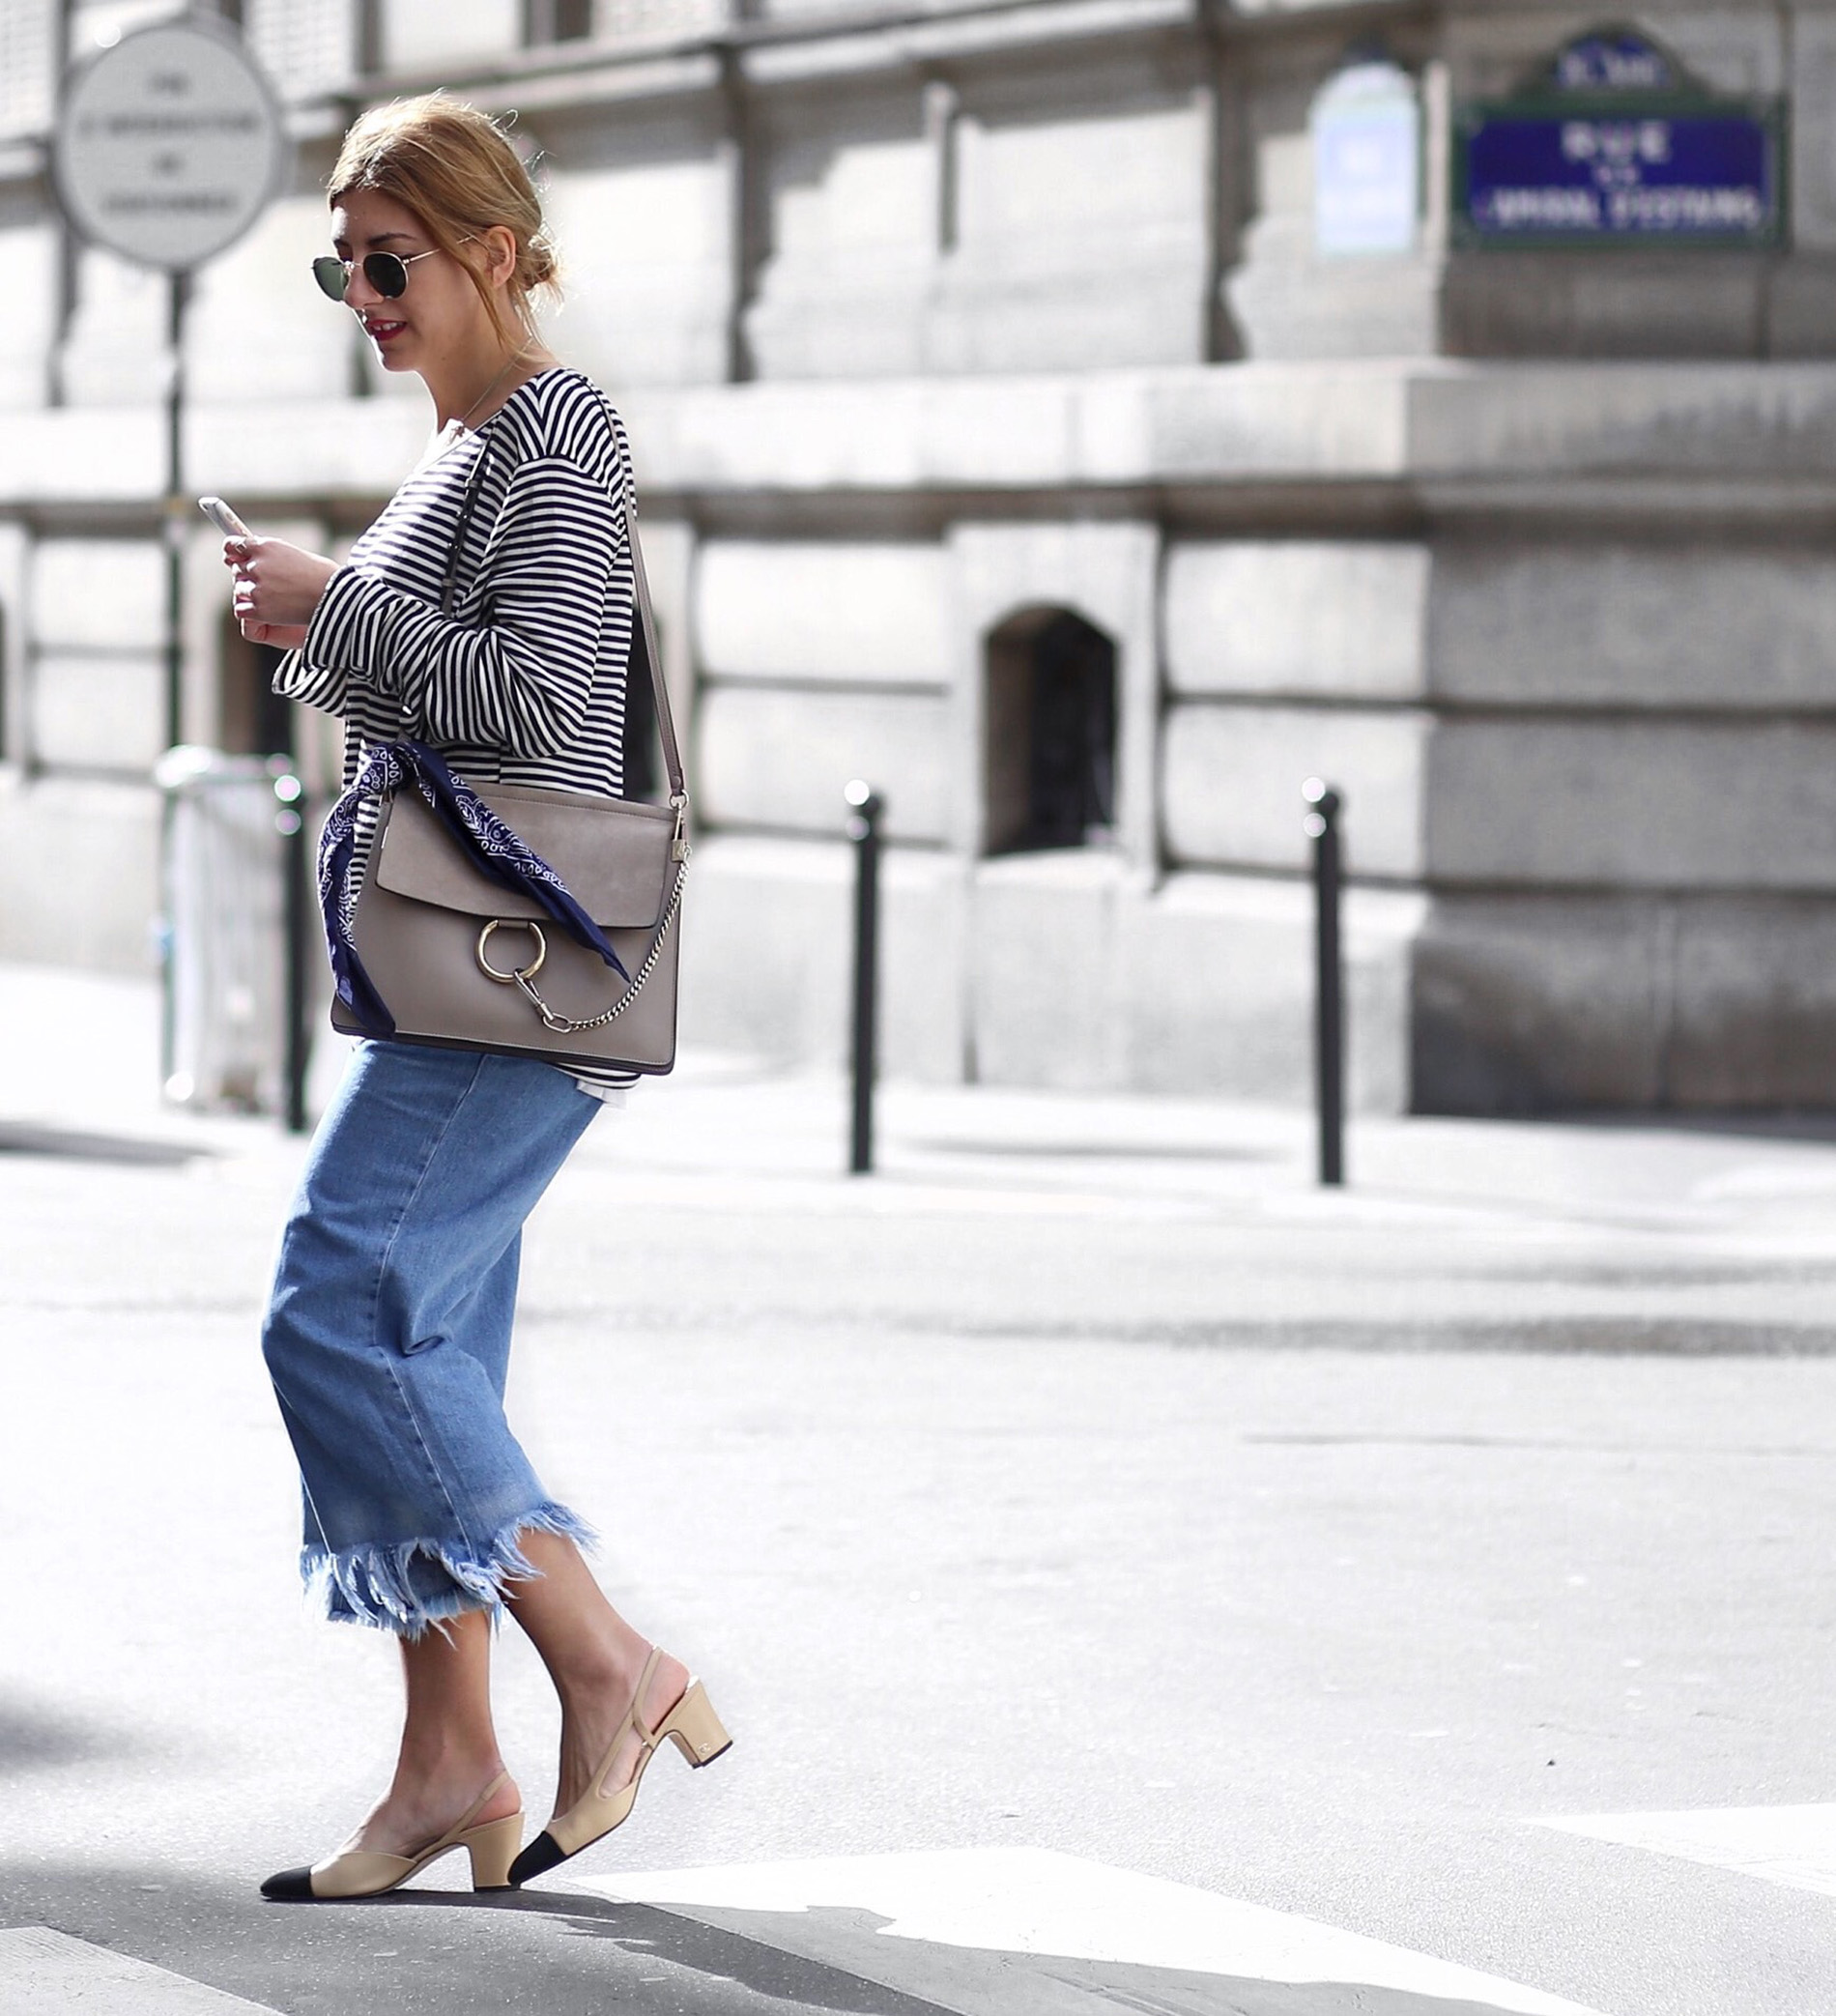 Paris-Fashion-Week-Streetstyle